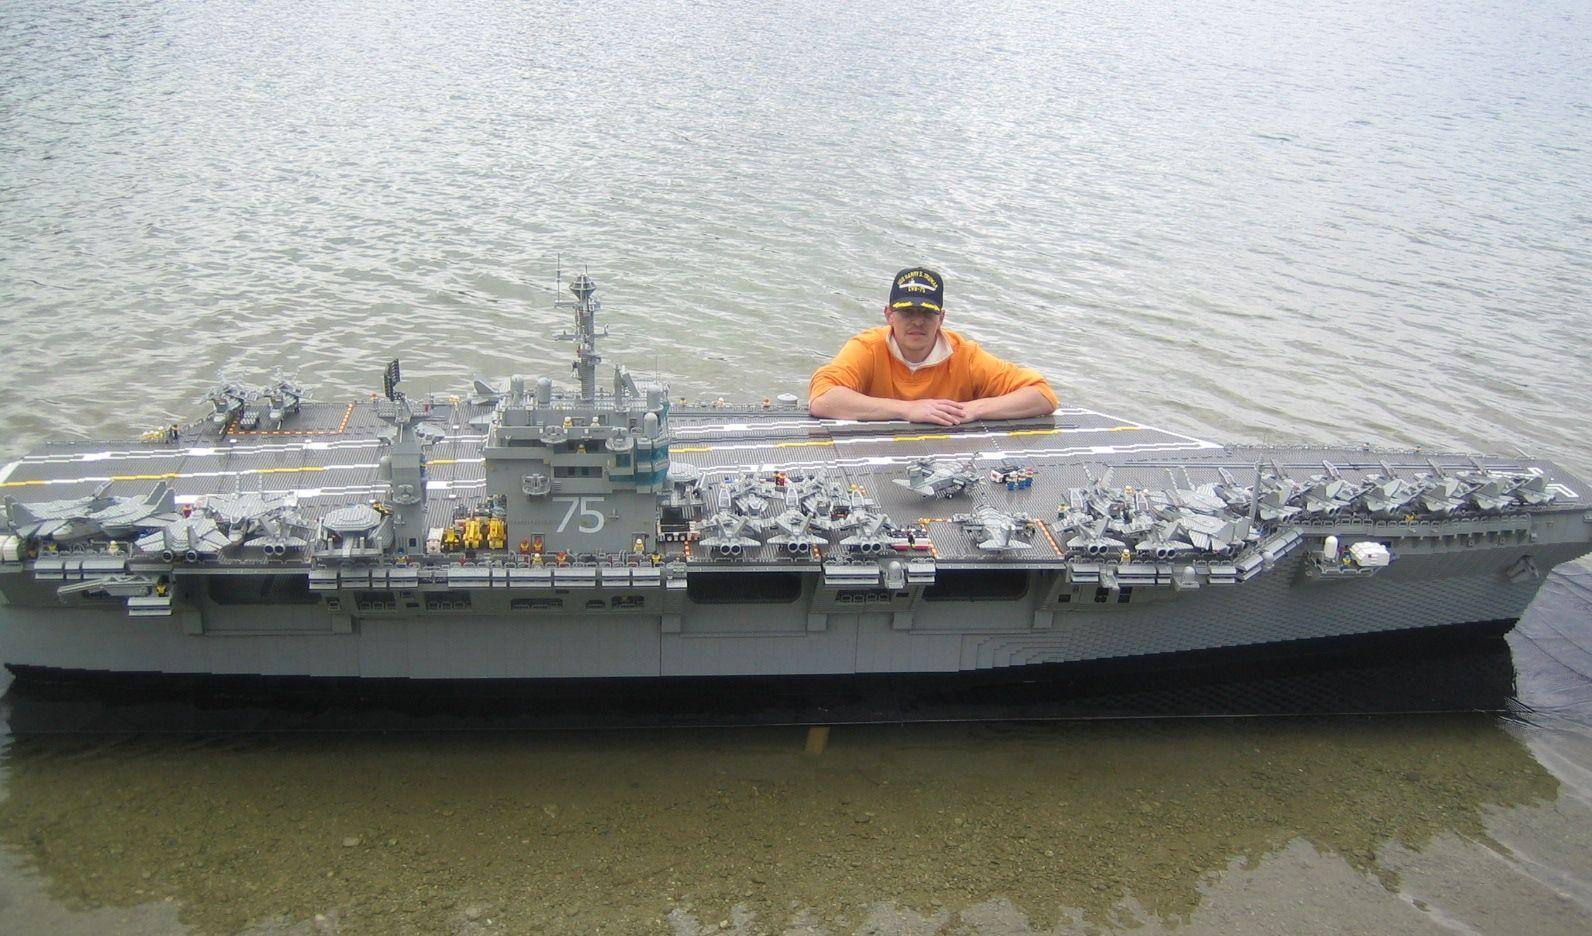 Lego Aircraft Carrier For Sale